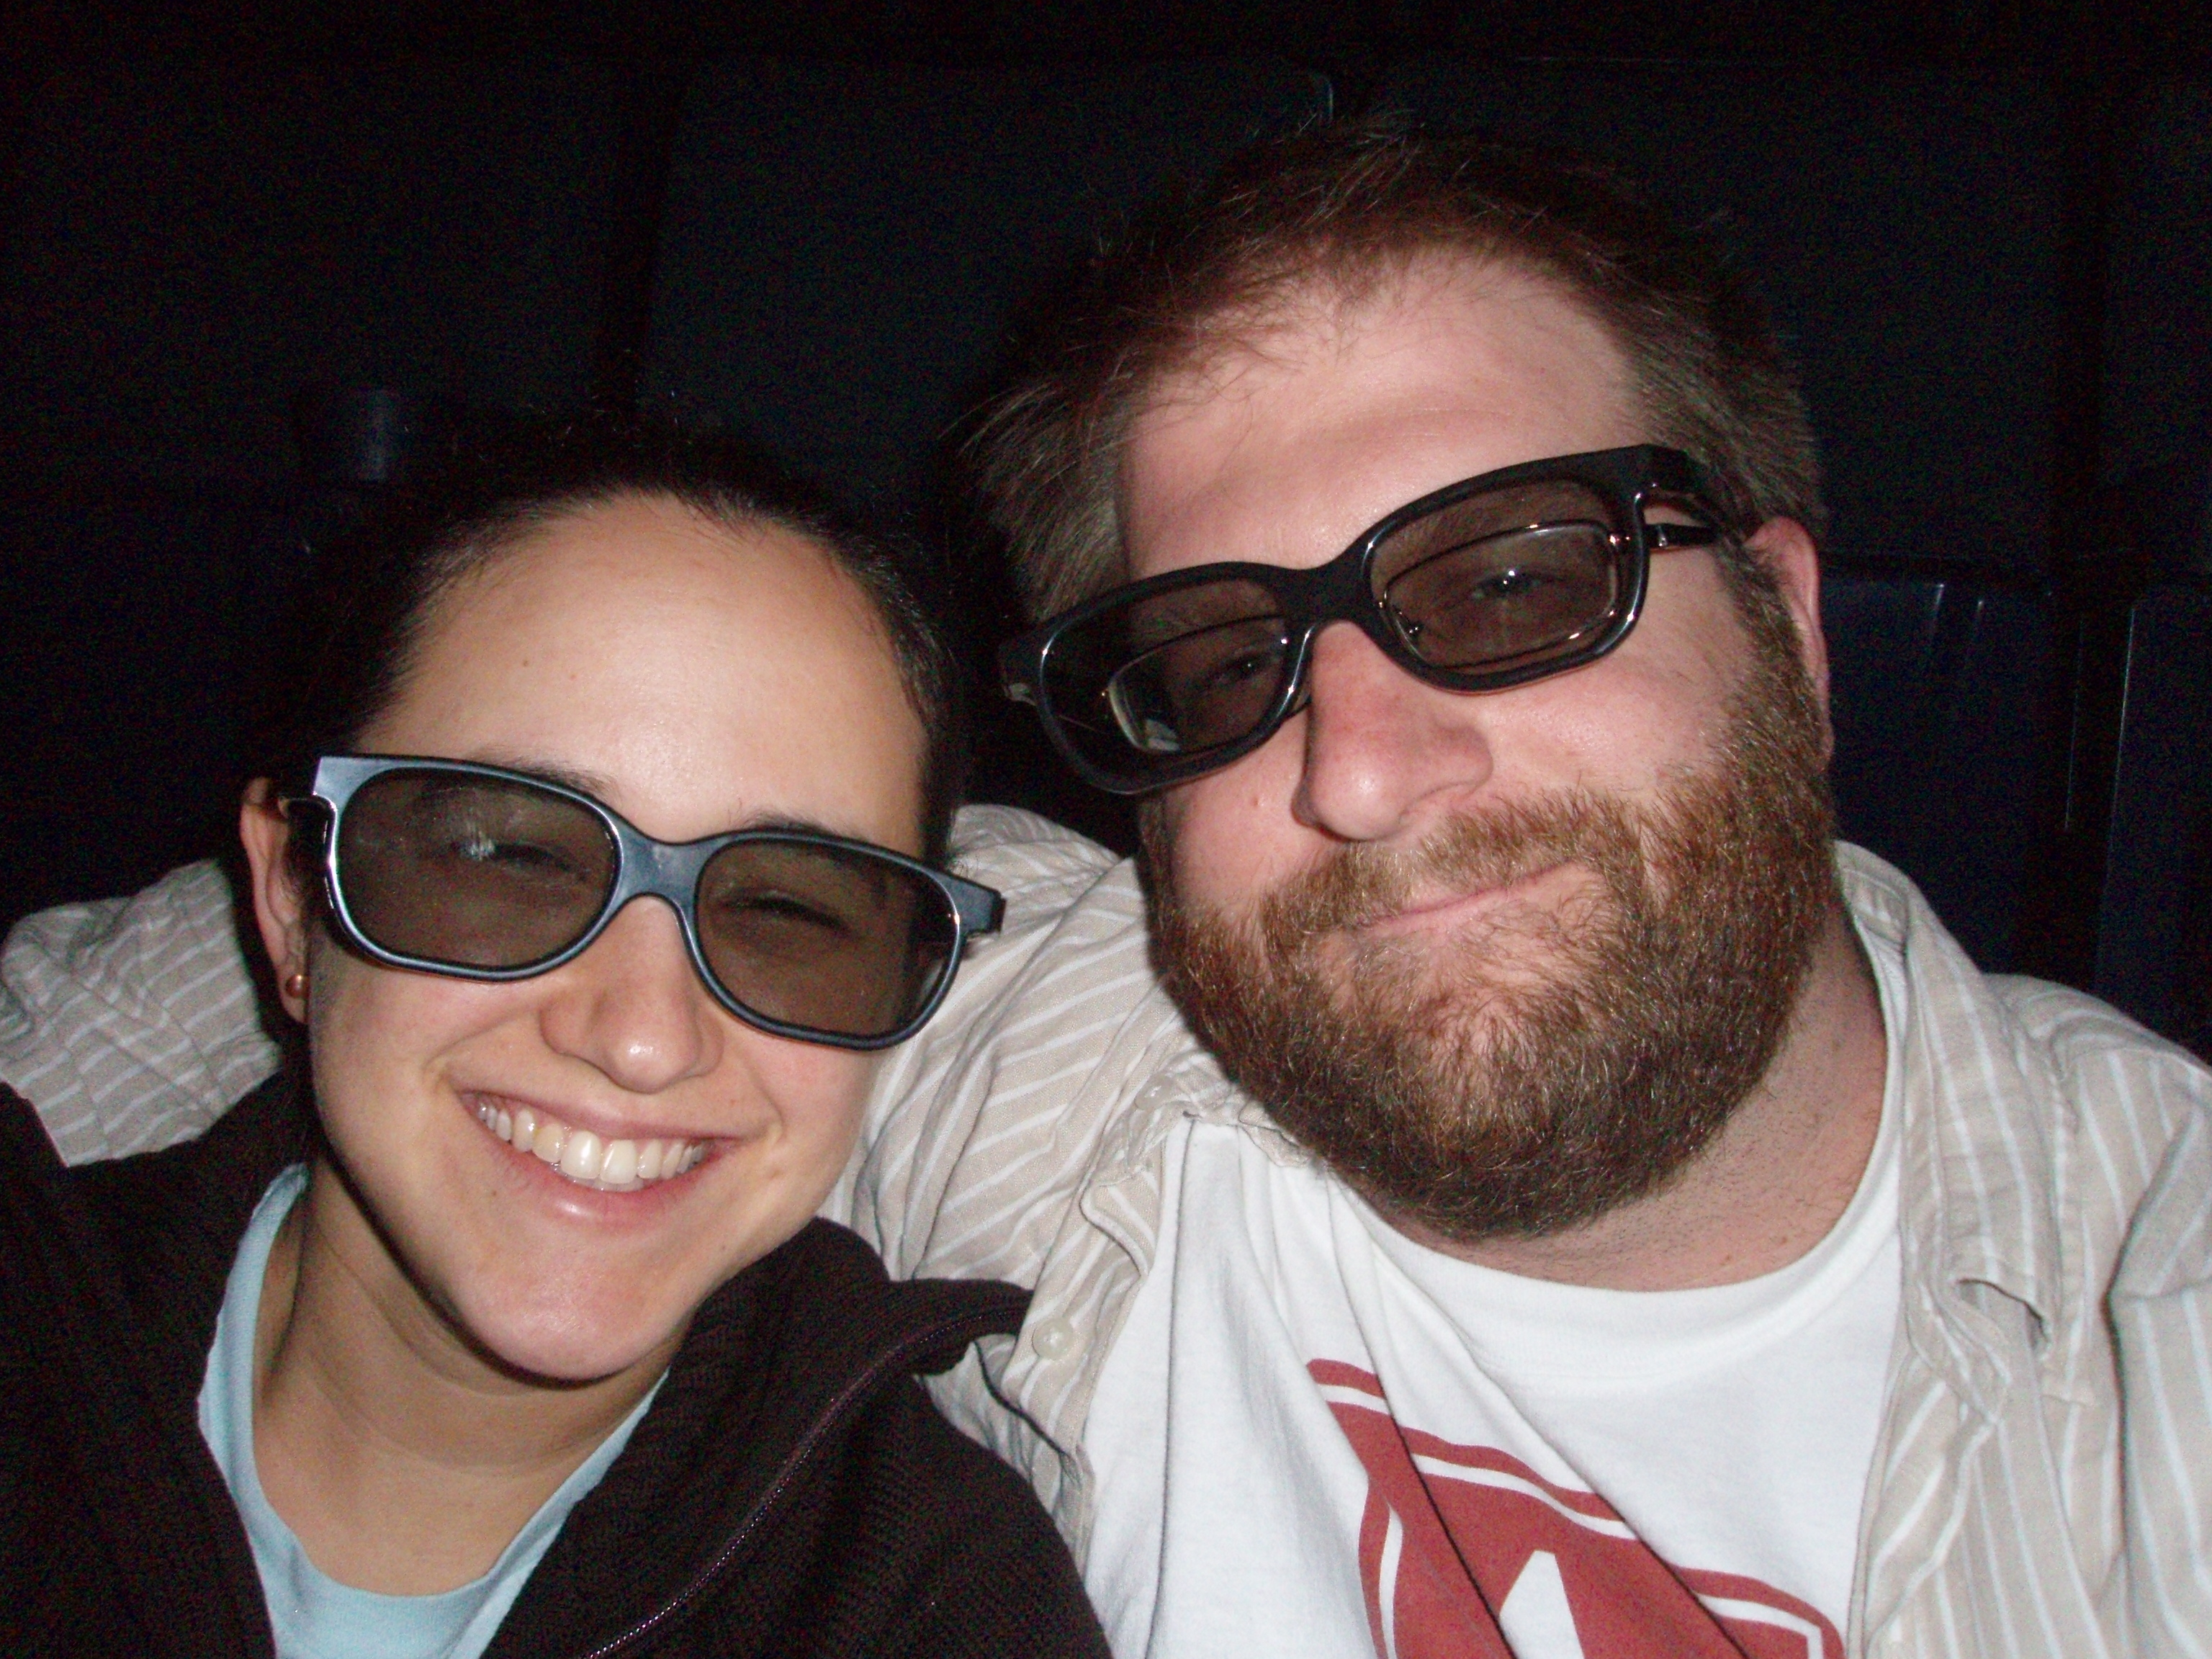 The tradition of watching a 3D movie (my first!)